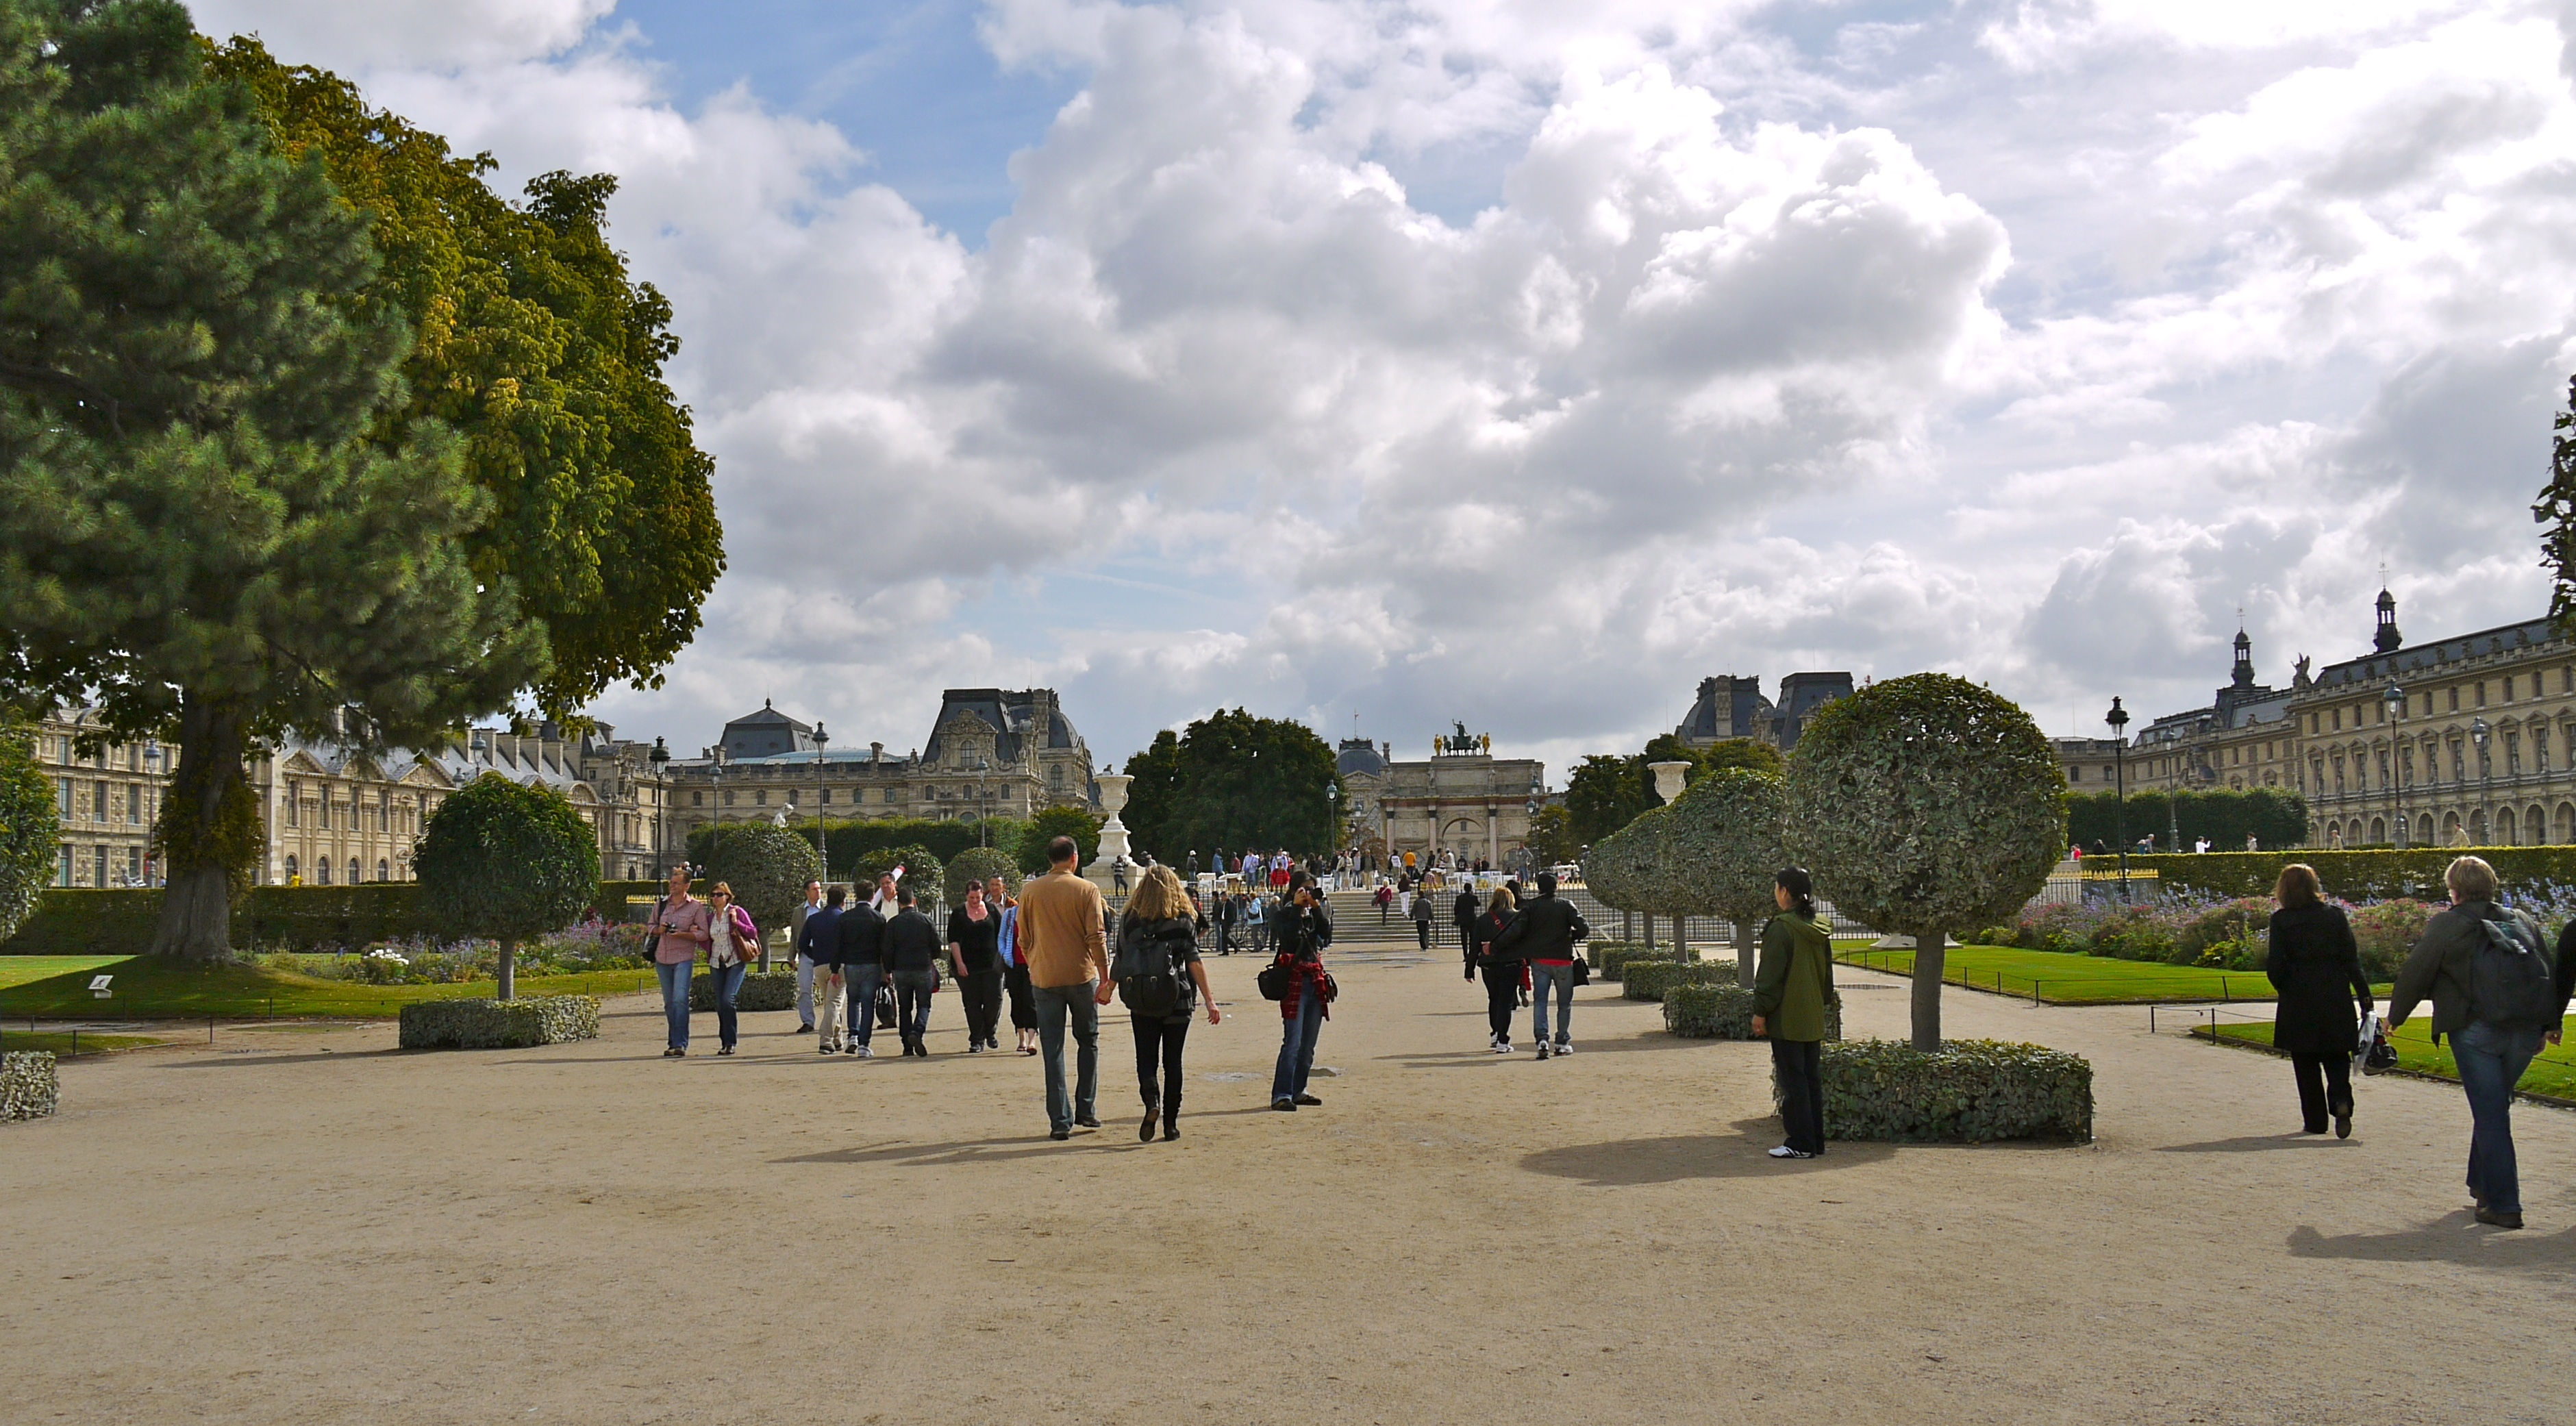 File grande all e du jardin des tuileries 2 paris 15 september wikimedia commons - Plan detaille du jardin des tuileries ...